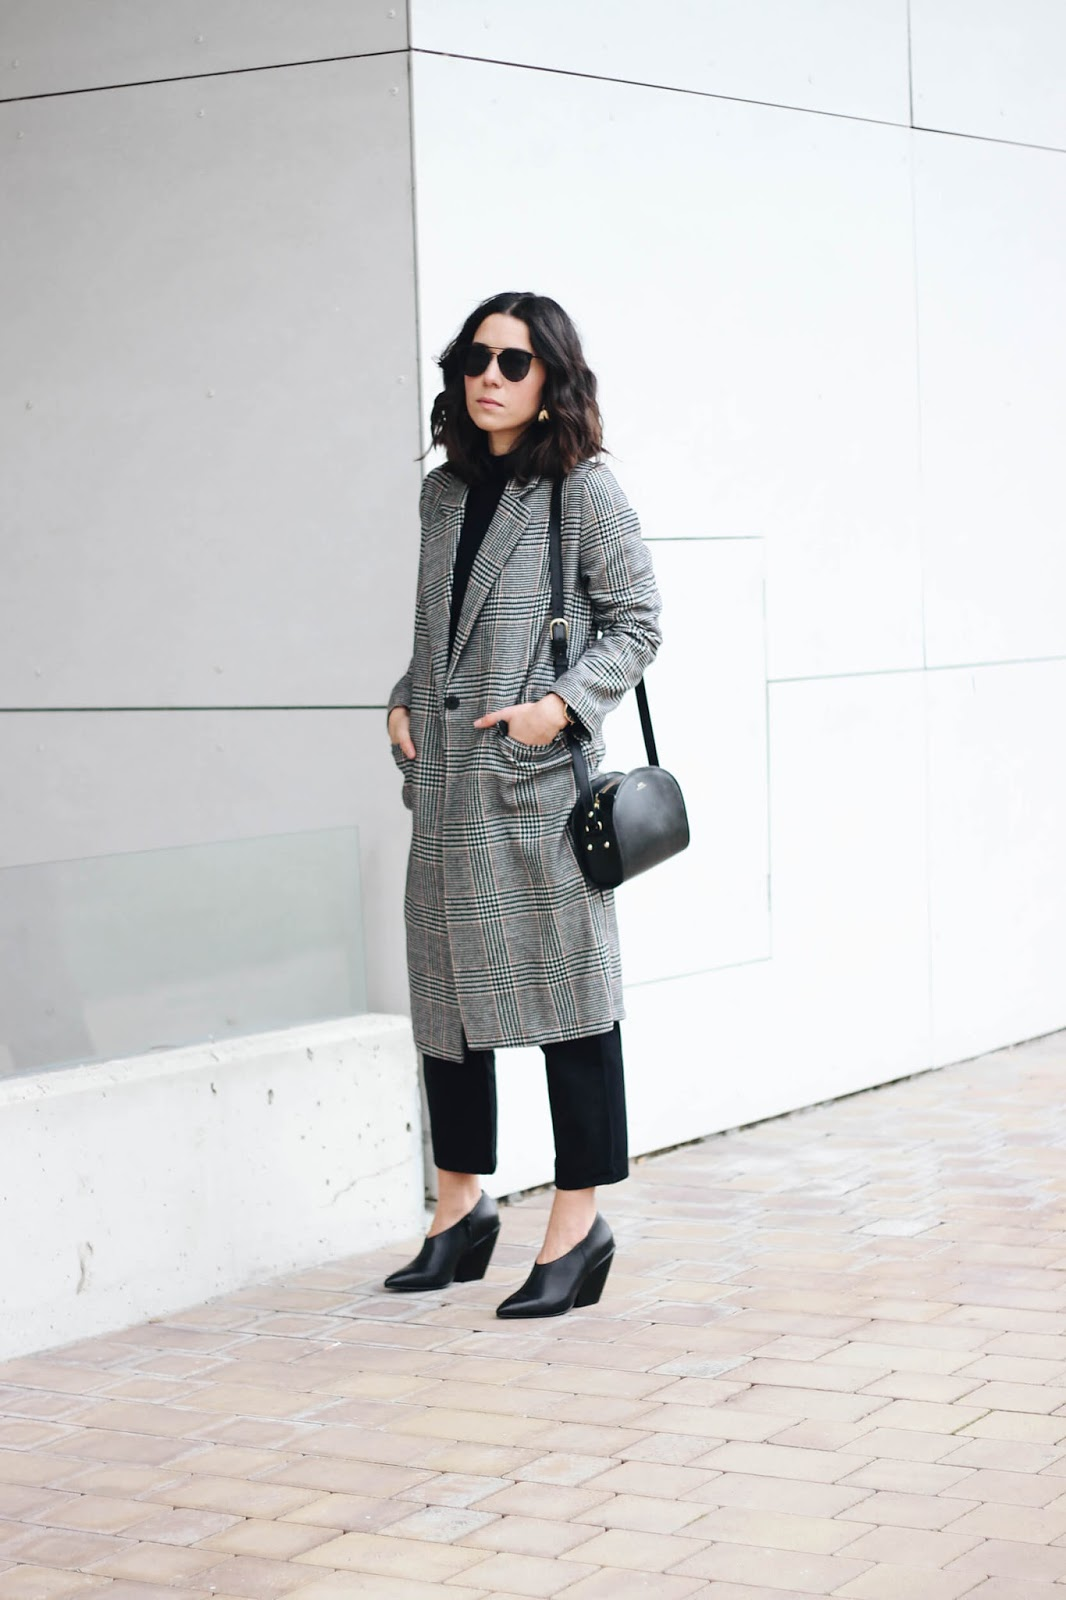 LONG HM COAT HM POINTED HEELS COS JEANS